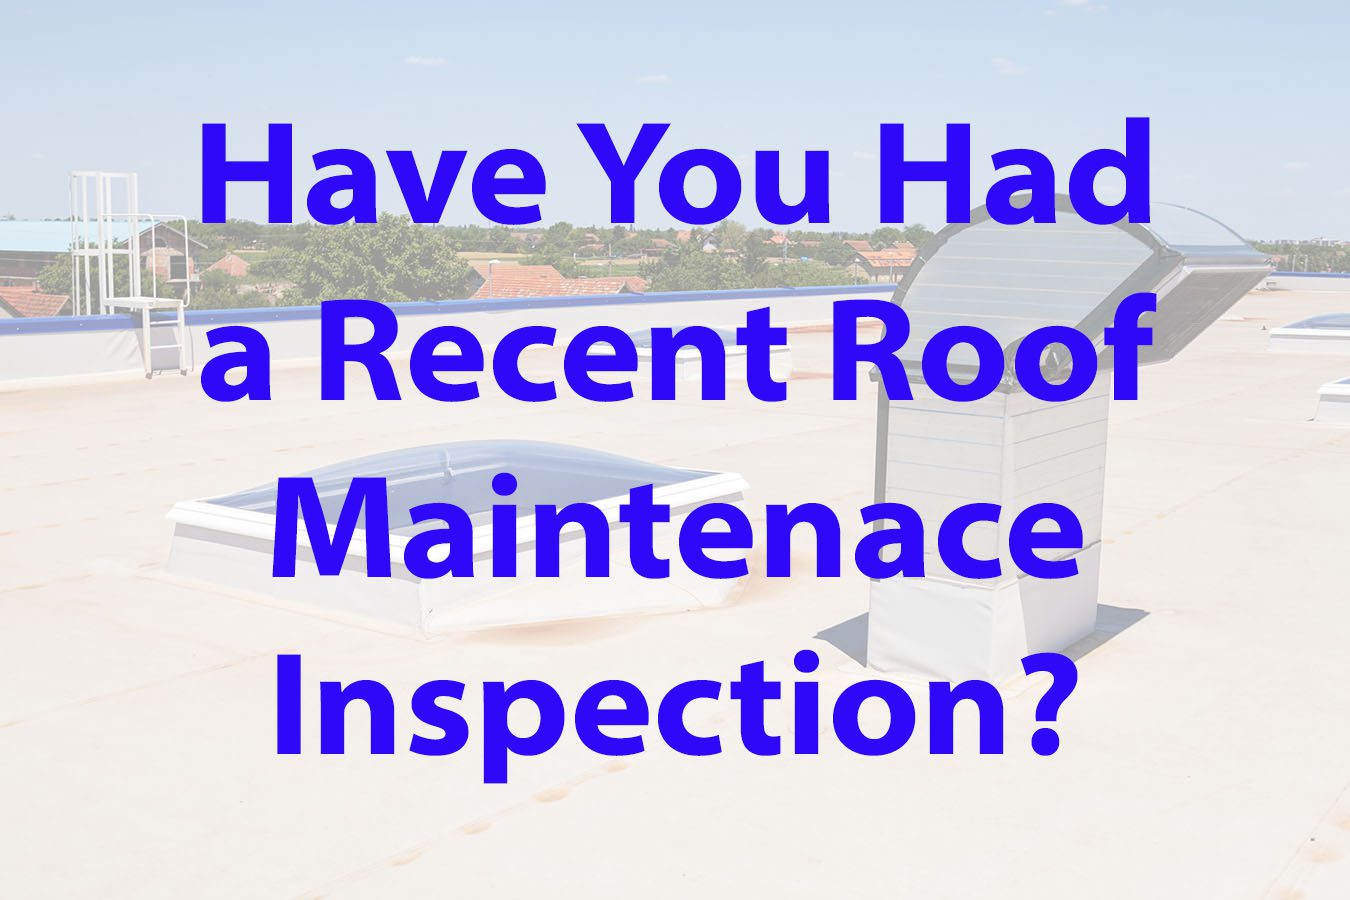 commercial roofer should perform maintenance inspections